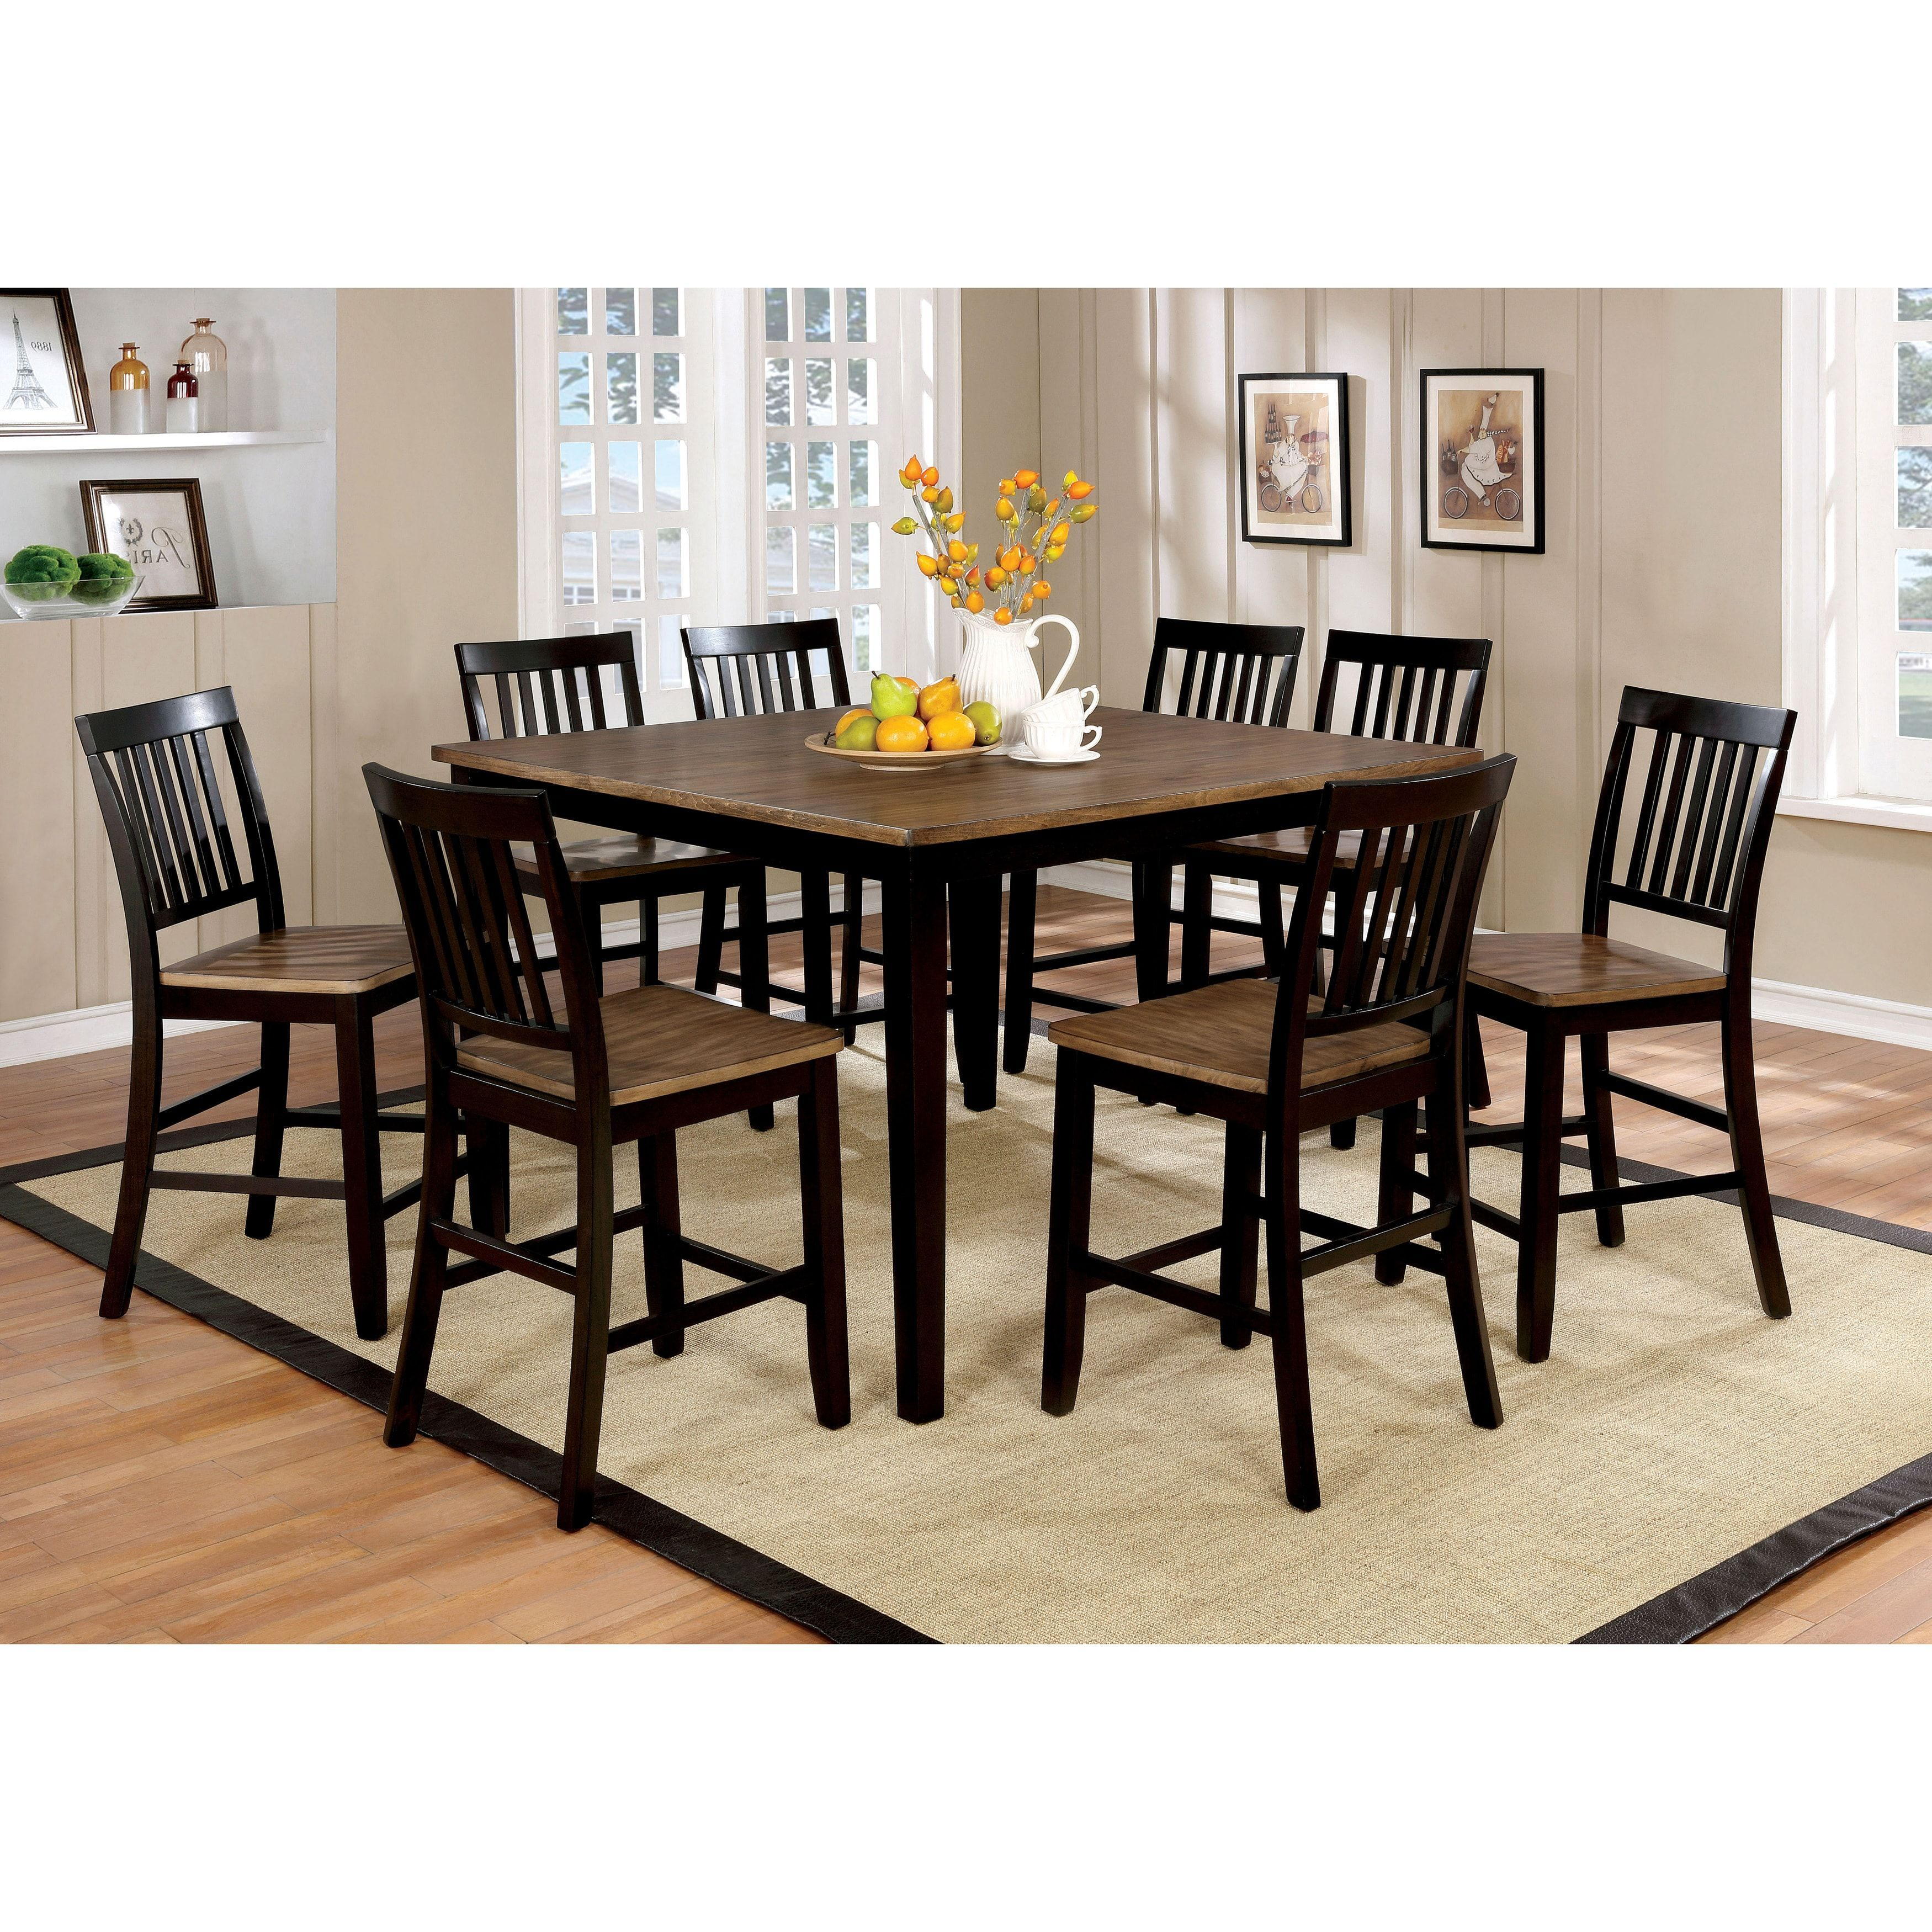 Furniture Of America Fresial 9 Piece Rustic Oak/Espresso Counter Height  Dining Set